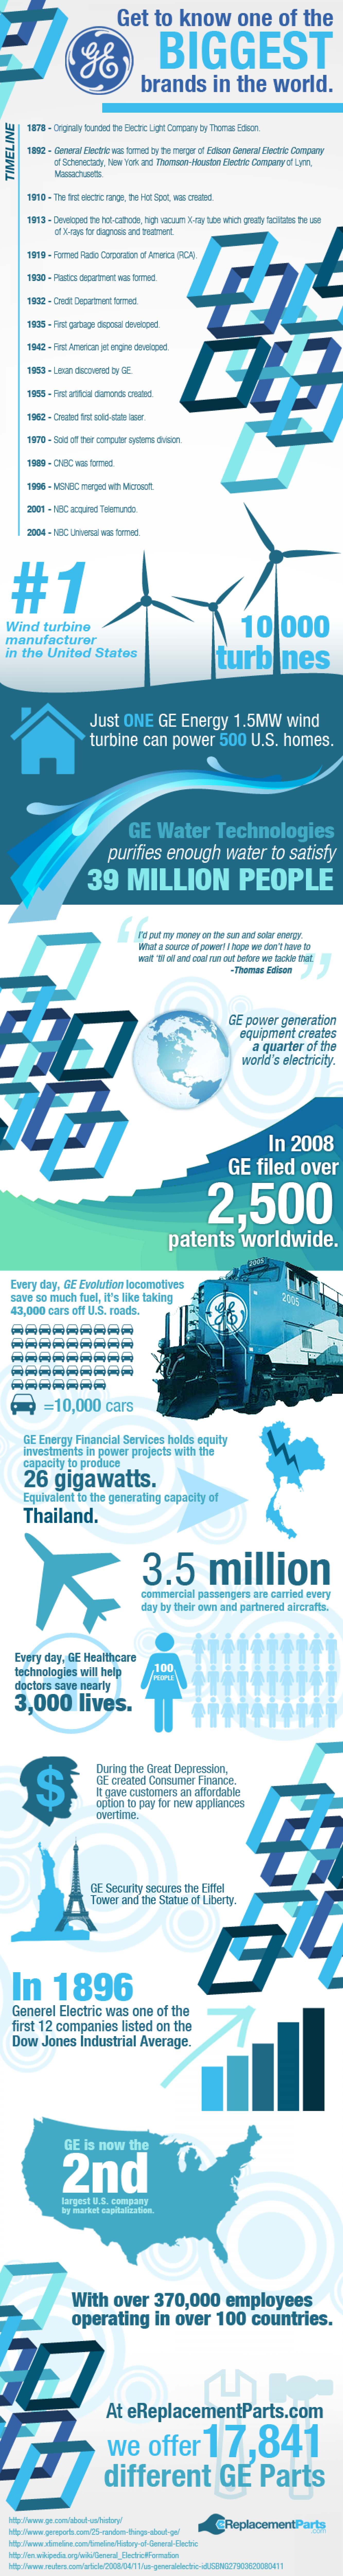 GE: The Biggest Brand in the World Infographic